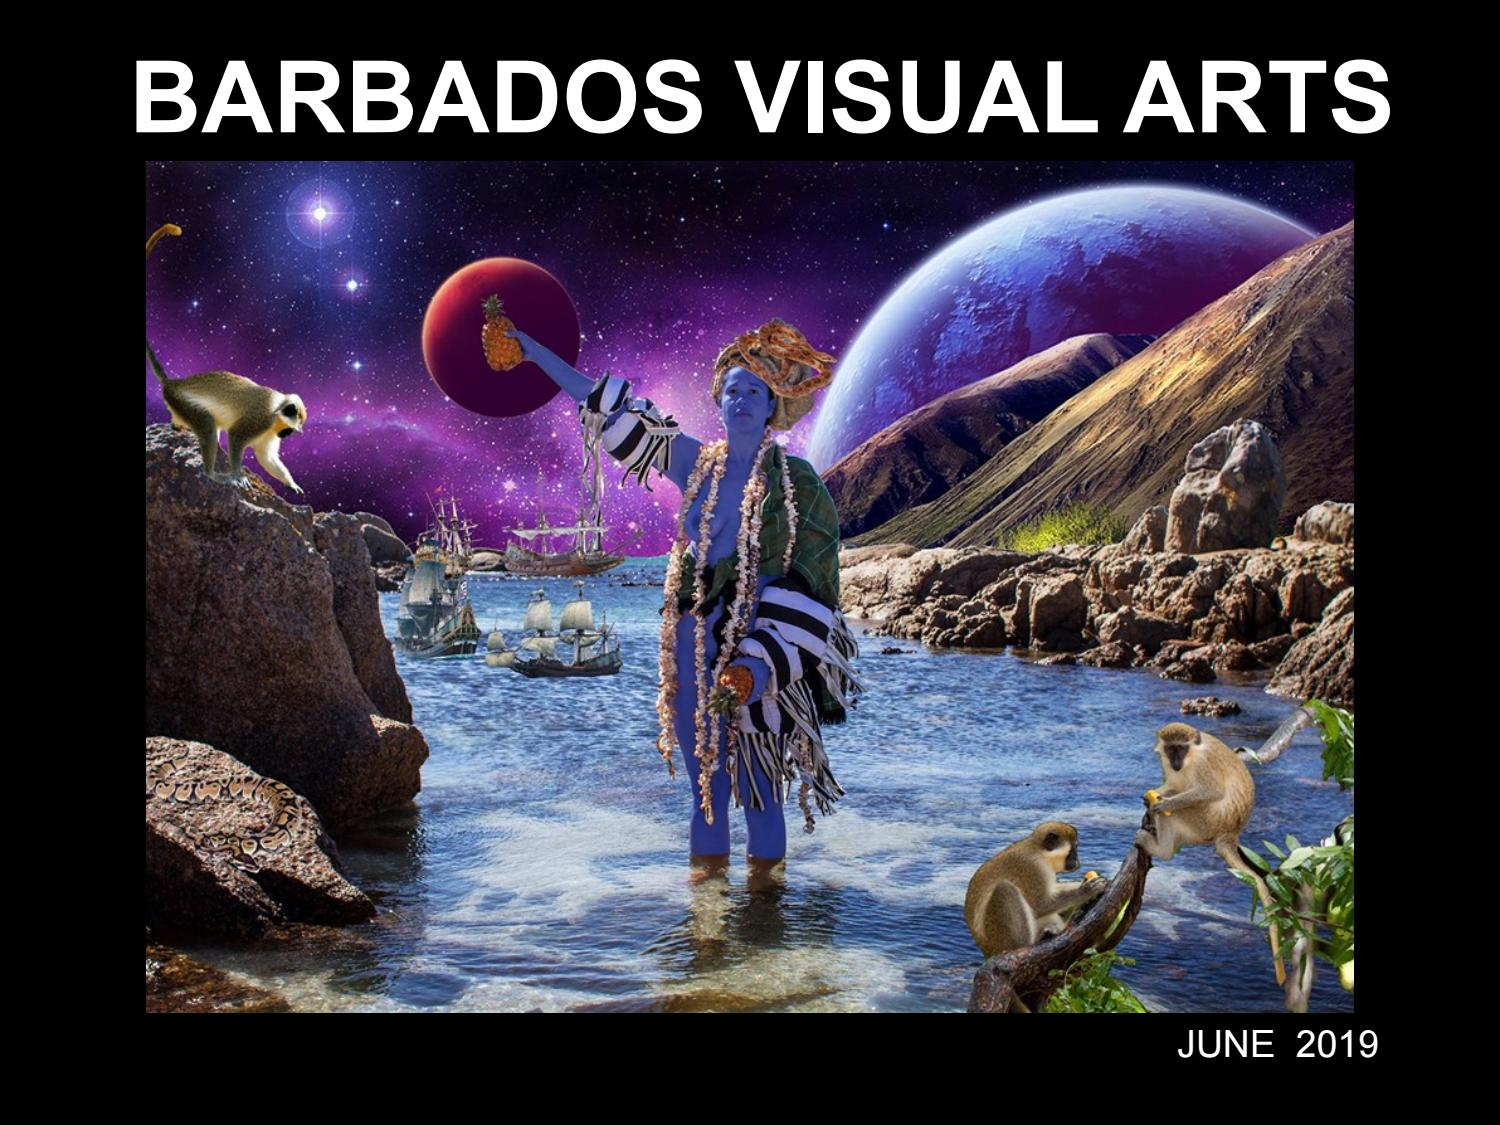 Barbados Visual Arts June 2019 issue by Corrie Scott - issuu